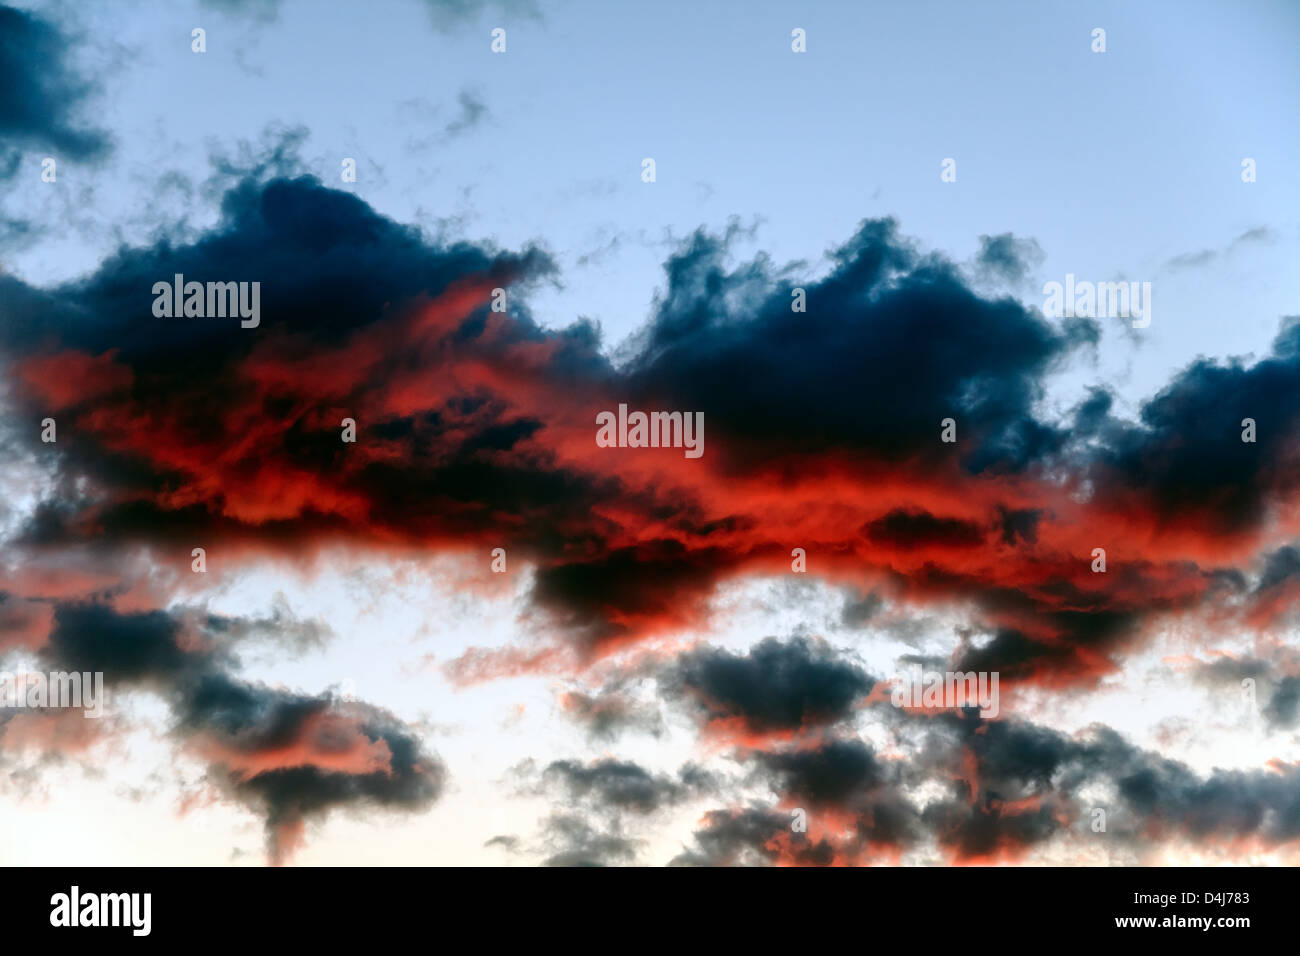 Dark clouds illuminated by a strong red light of the setting sun - Stock Image